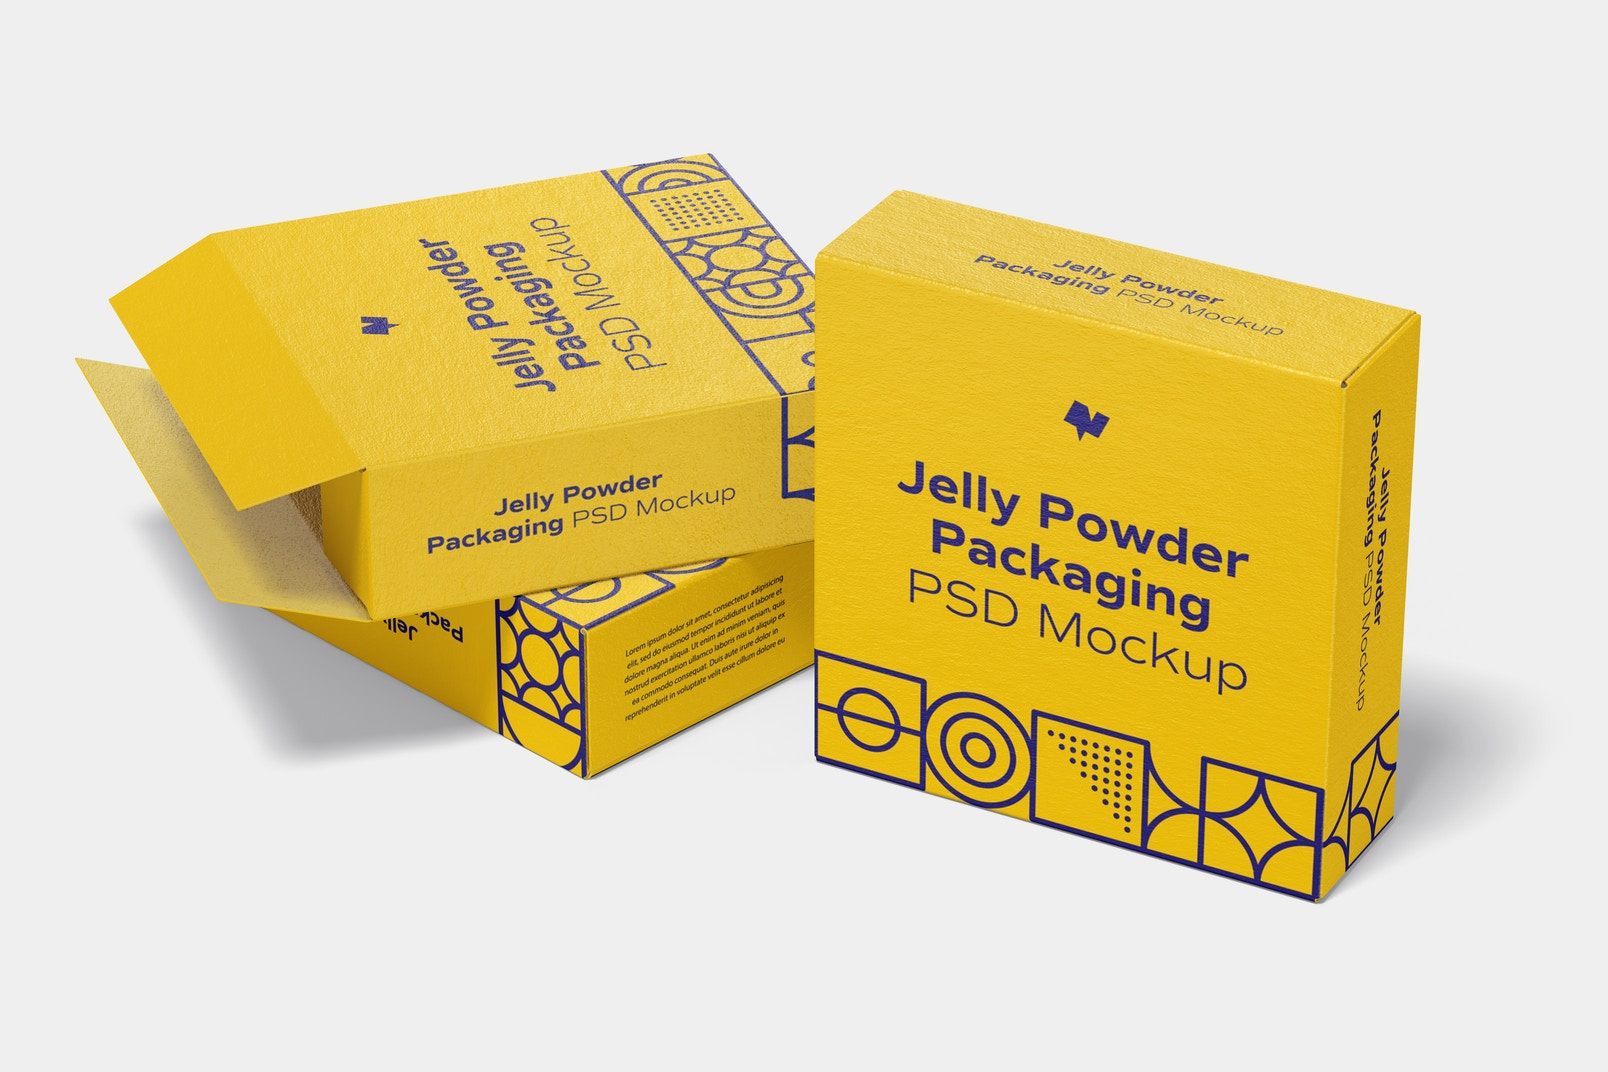 Jelly Powder Packaging Mockup, Right View